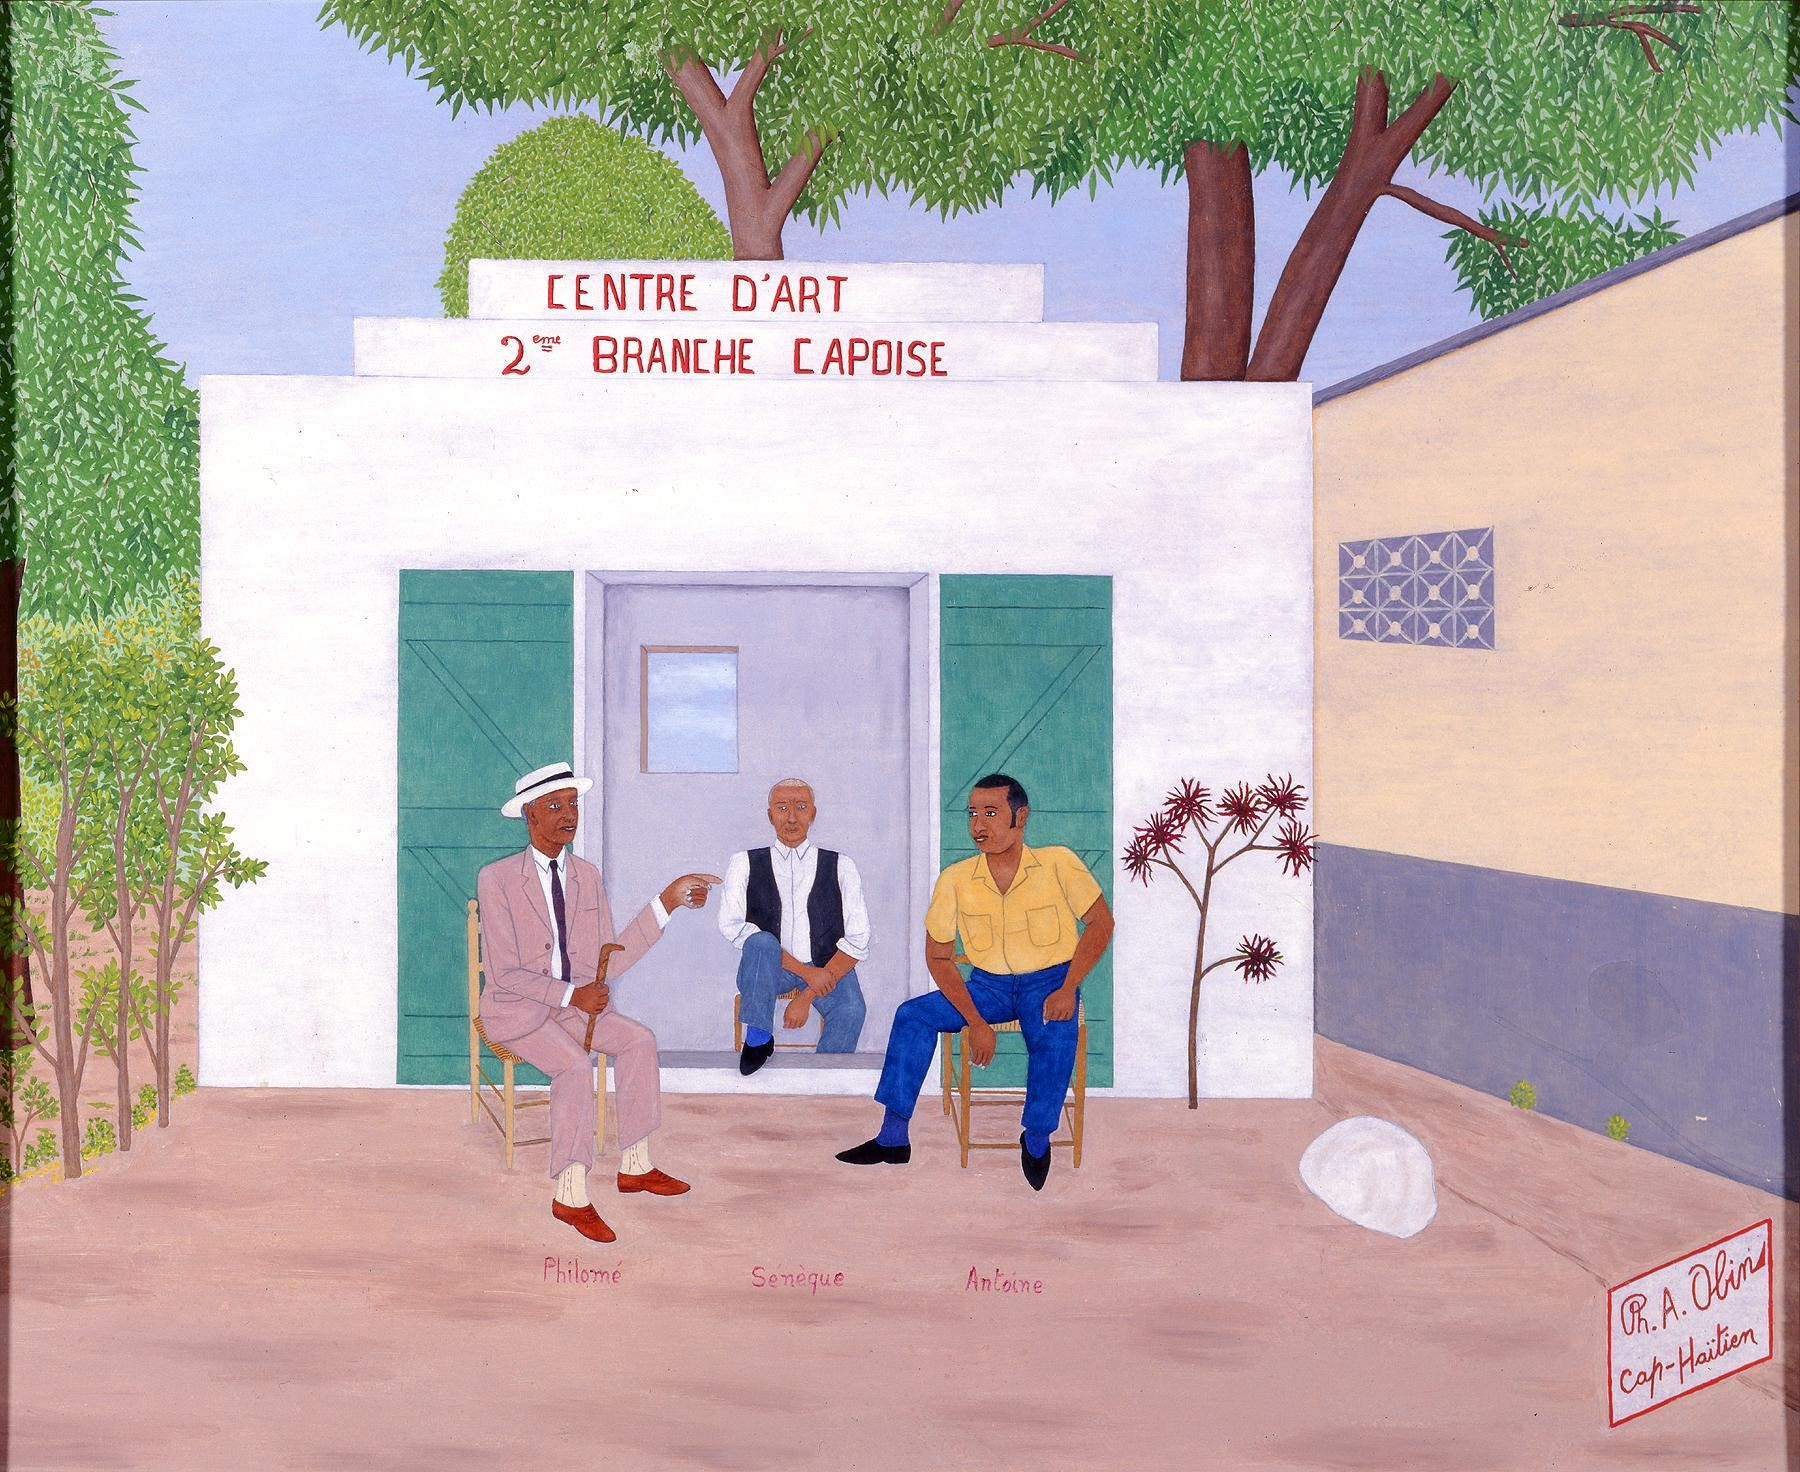 Three men sitting in chairs in front of a building